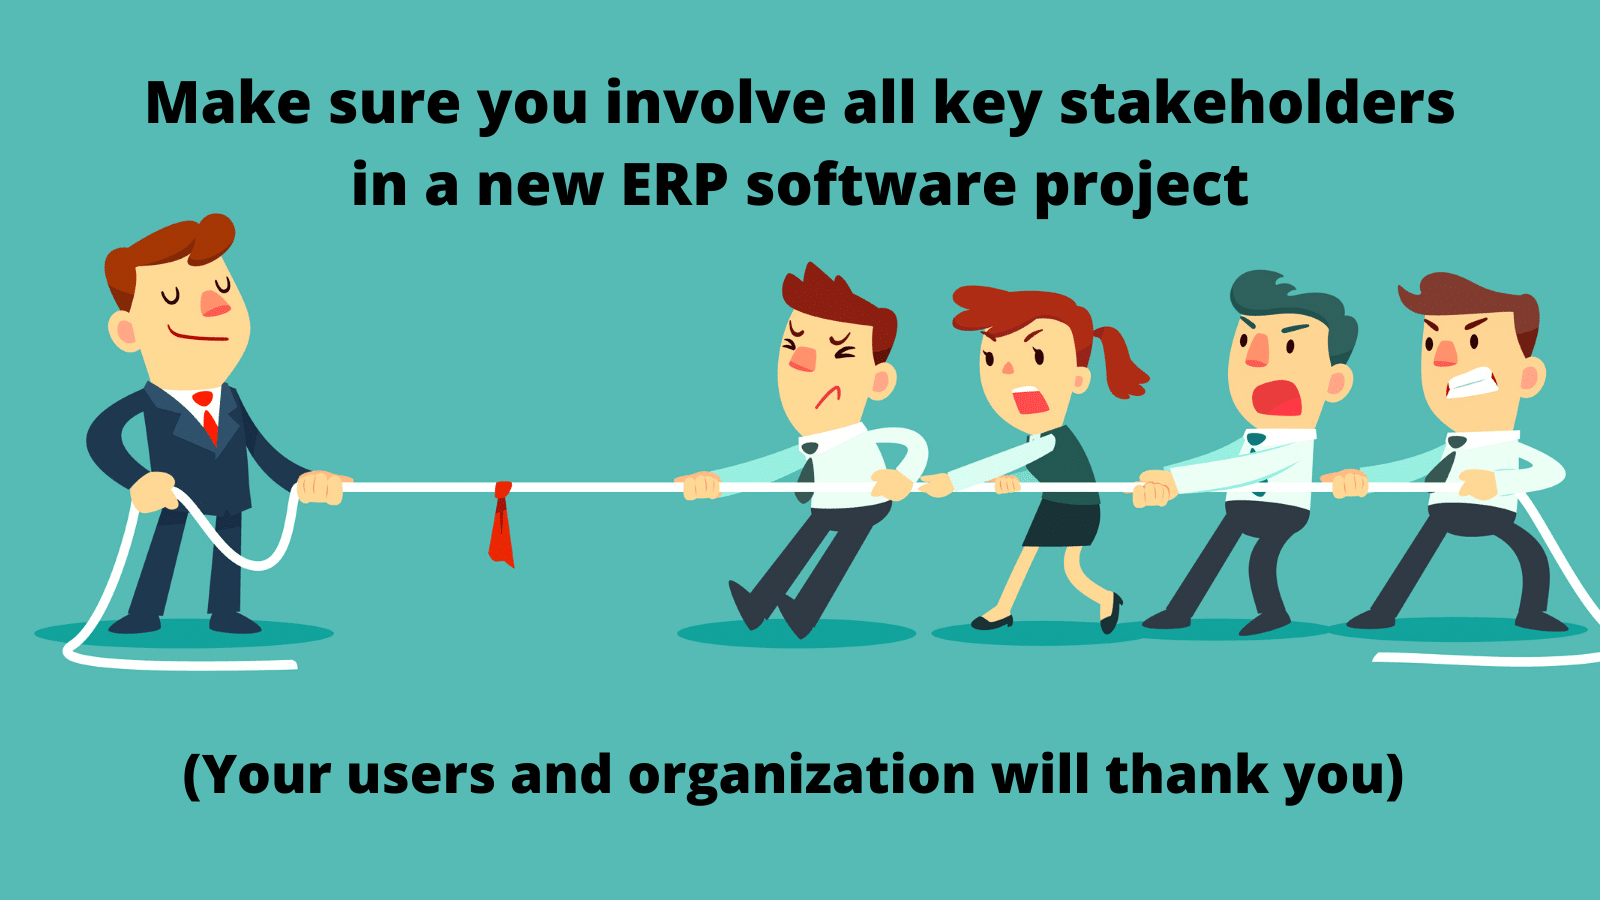 Involve all key stakeholders in an ERP project